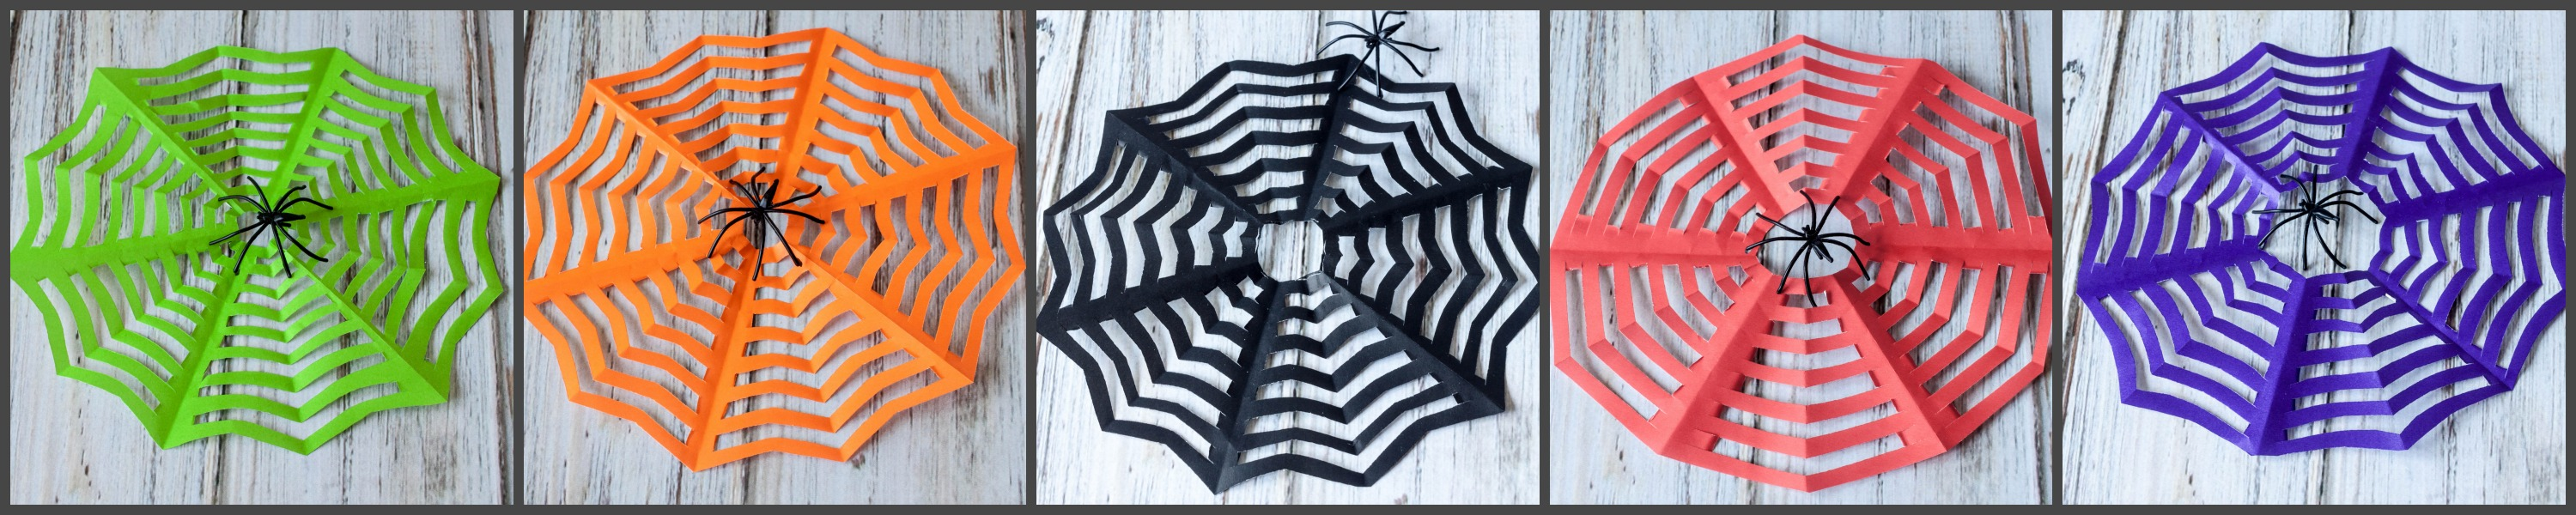 Kirigami Spider Webs for Halloween - So easy to make! Great for garland, gifts and decorations!